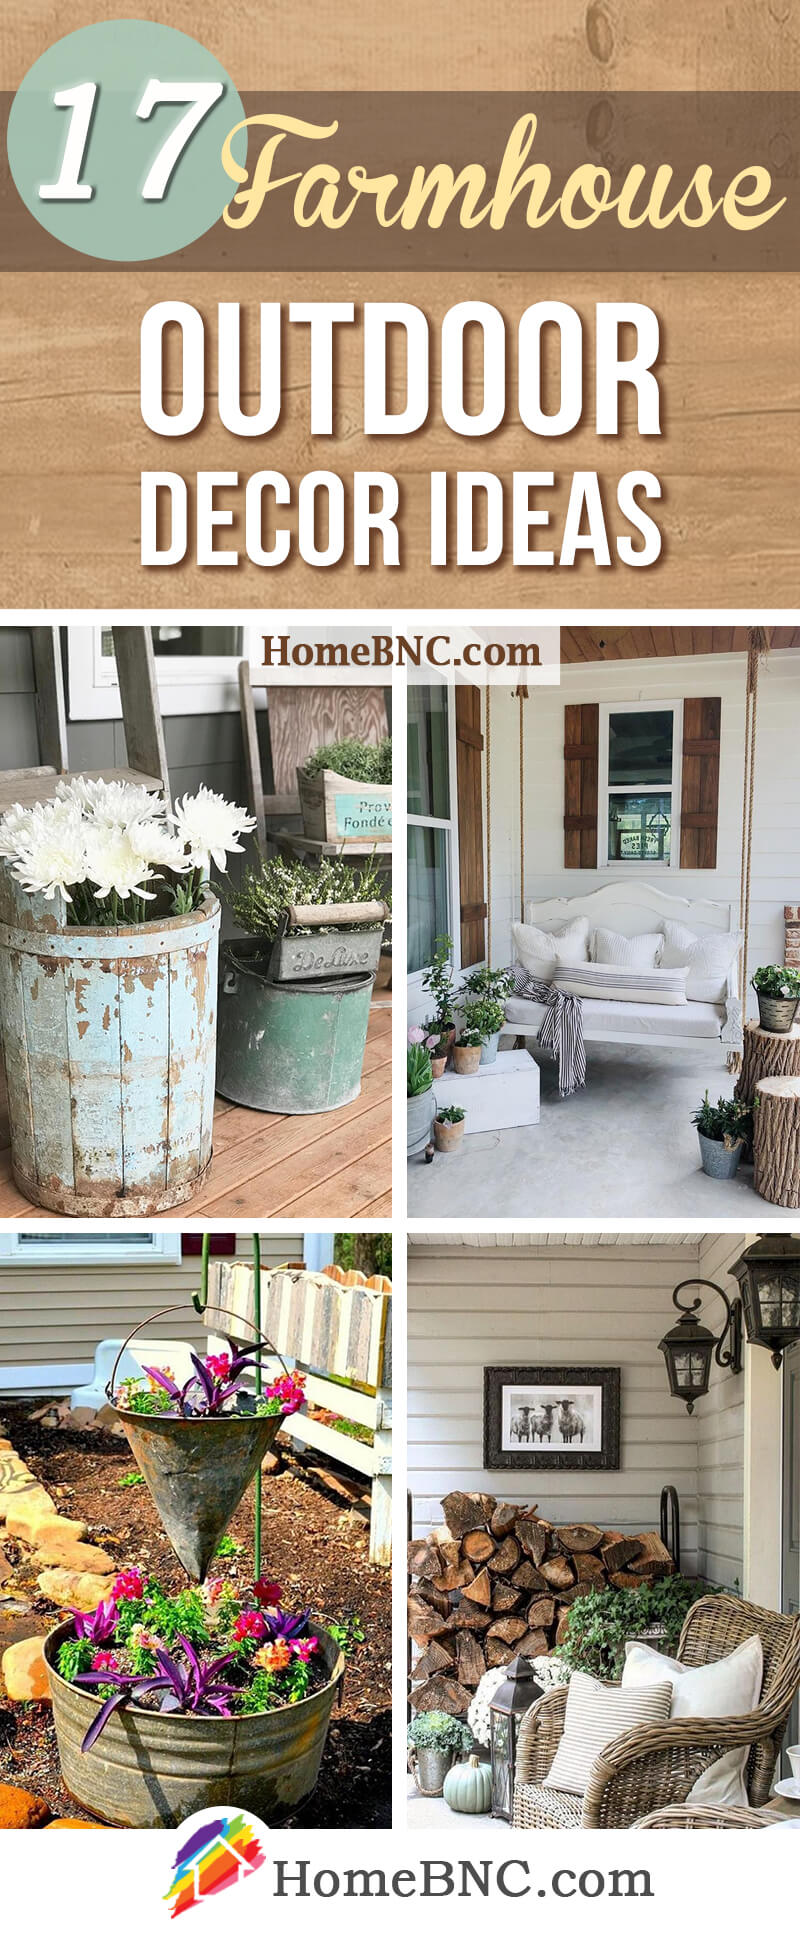 17 Best Farmhouse Outdoor Decor Ideas And Designs For 2021